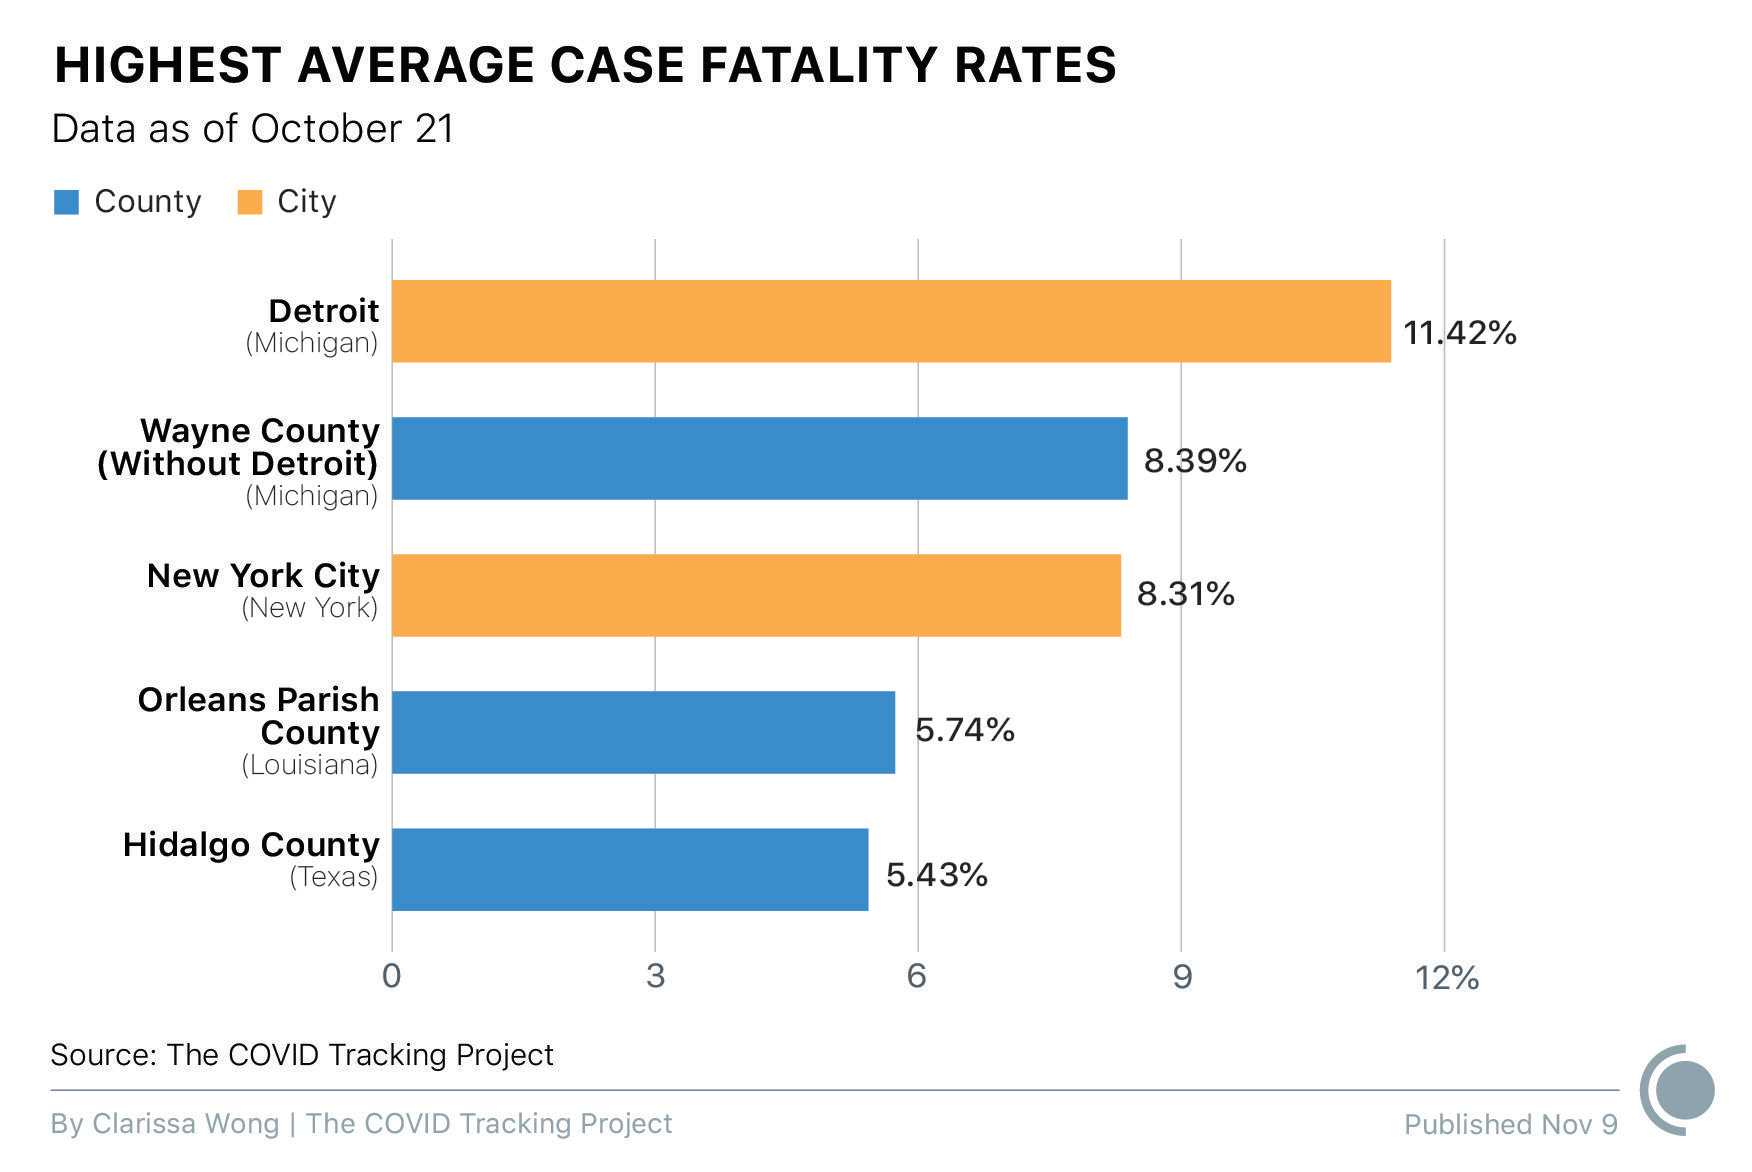 A bar graph shows the highest average case fatality rates, as of October 21. Detroit, Michigan has an average case fatality rate of 11.42%; Wayne County (excluding Detroit) in Michigan has an average CFR of 8.39%; New York City, New York has an average CFR of 8.31%; Orleans Parish County in Louisiana has an average CFR of 5.74%; and Hidalgo County, Texas has an average CFR of 5.43%.